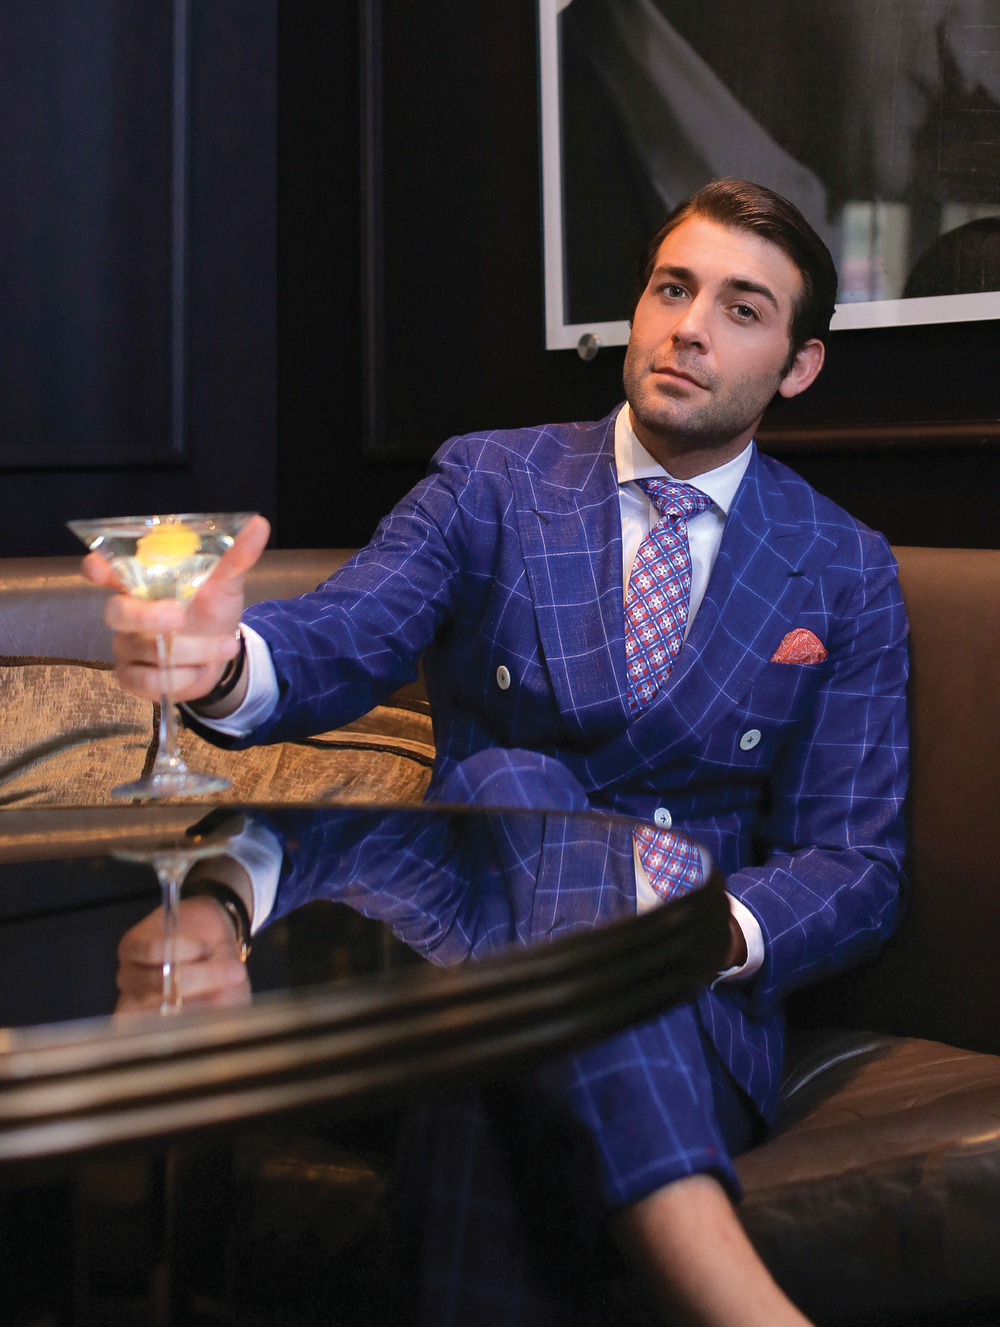 james wolk bar.jpg